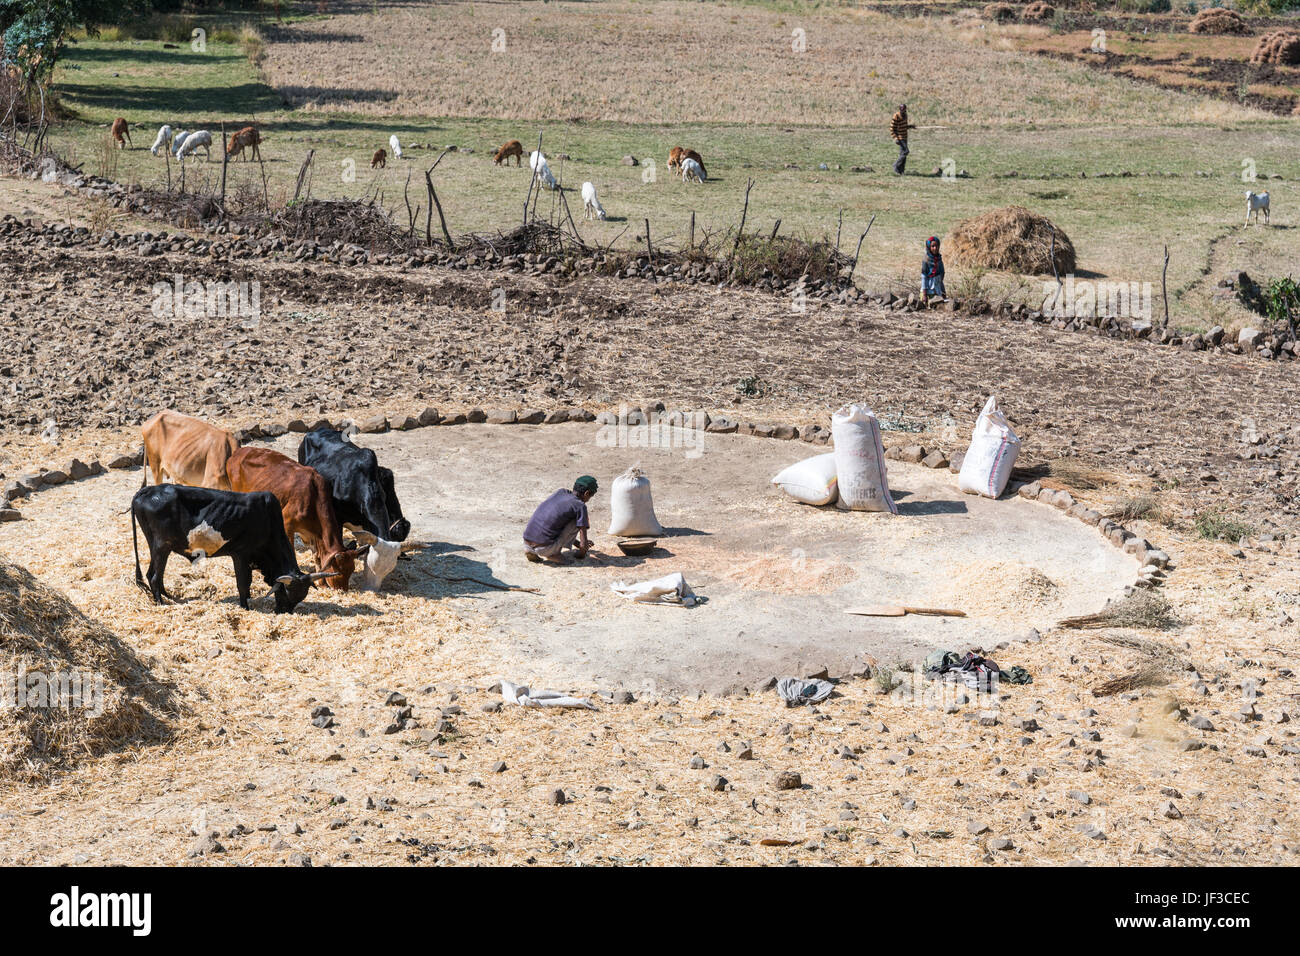 Lalibela, Ethiopia, Farmers at work in a field in the outskirts of the country. - Stock Image